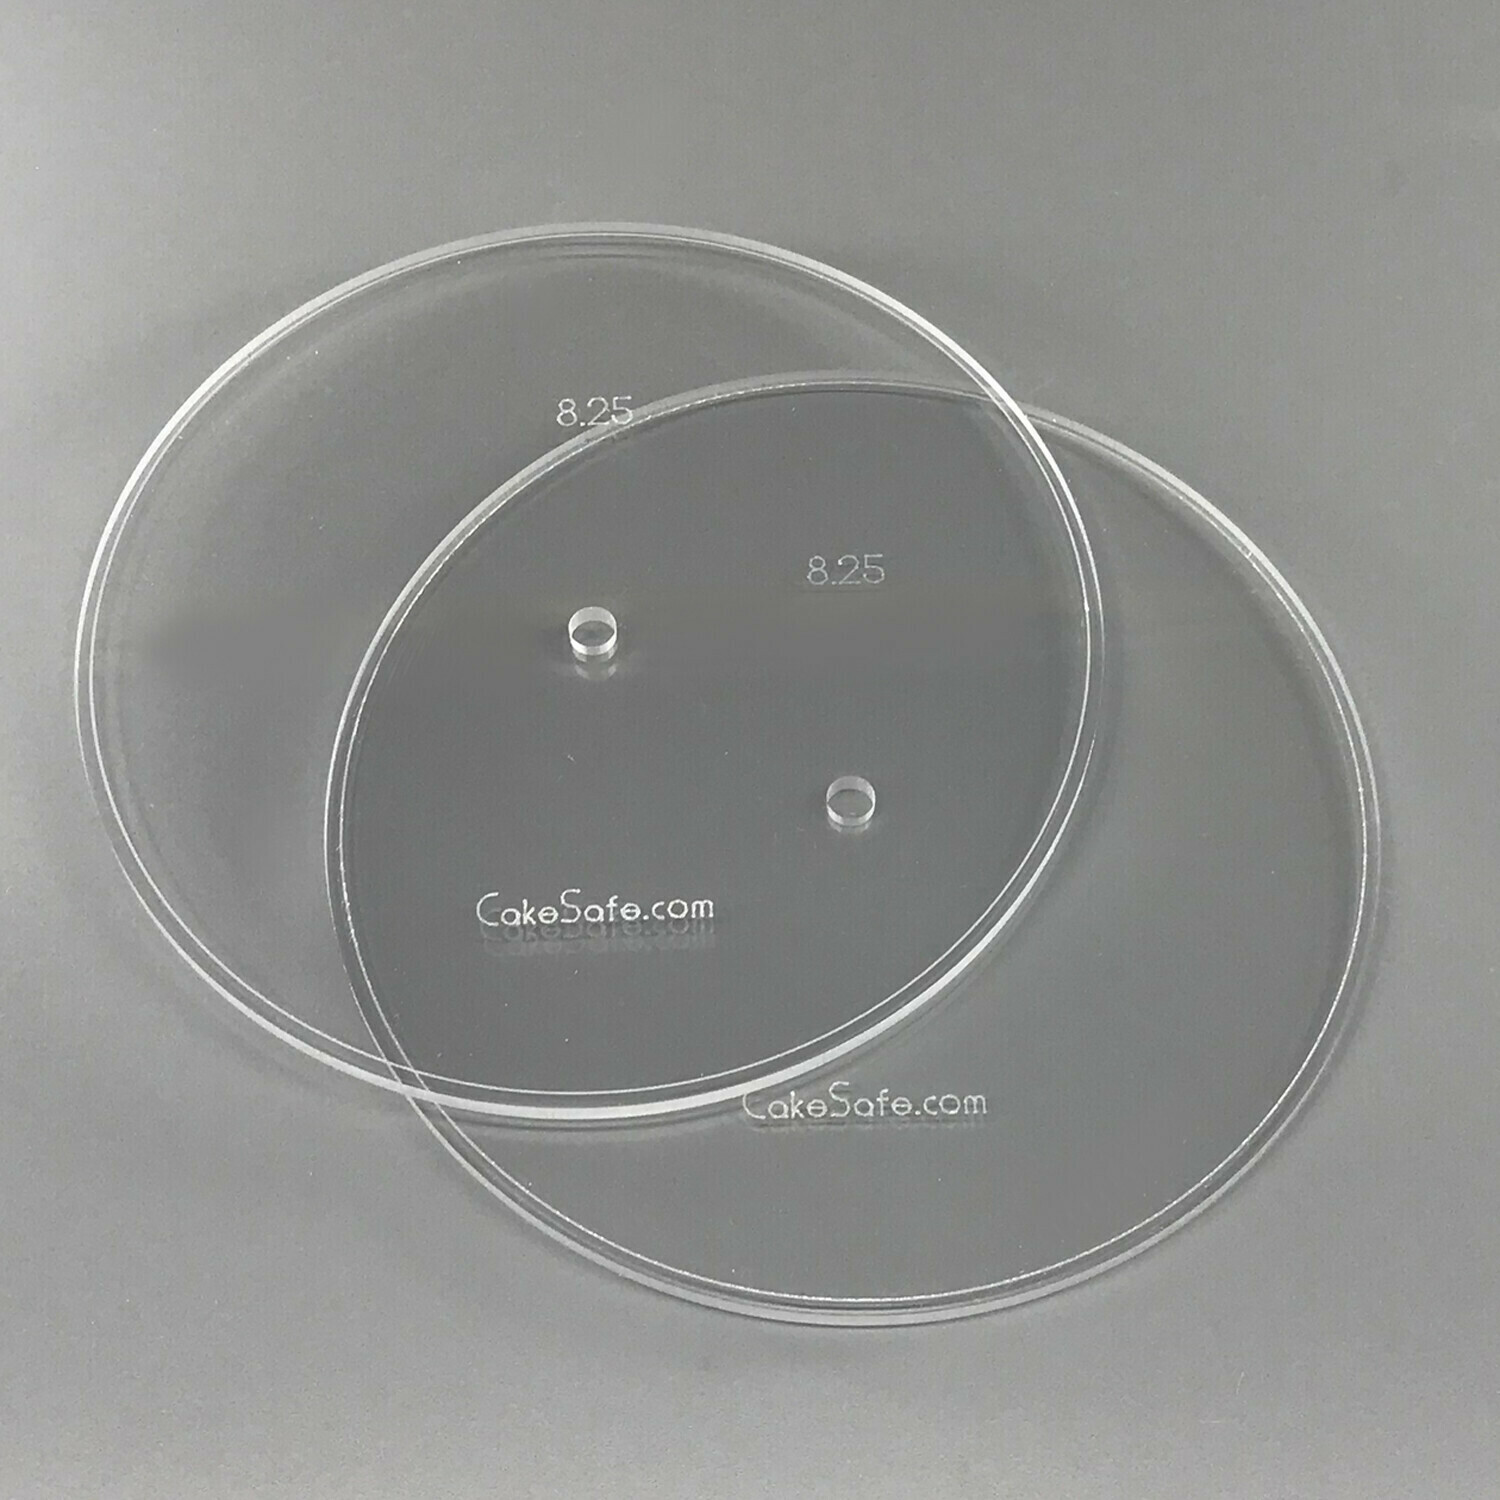 "5"" Round 0.25"" Acrylic Cake Disk with Center Hole - 2 Discs"